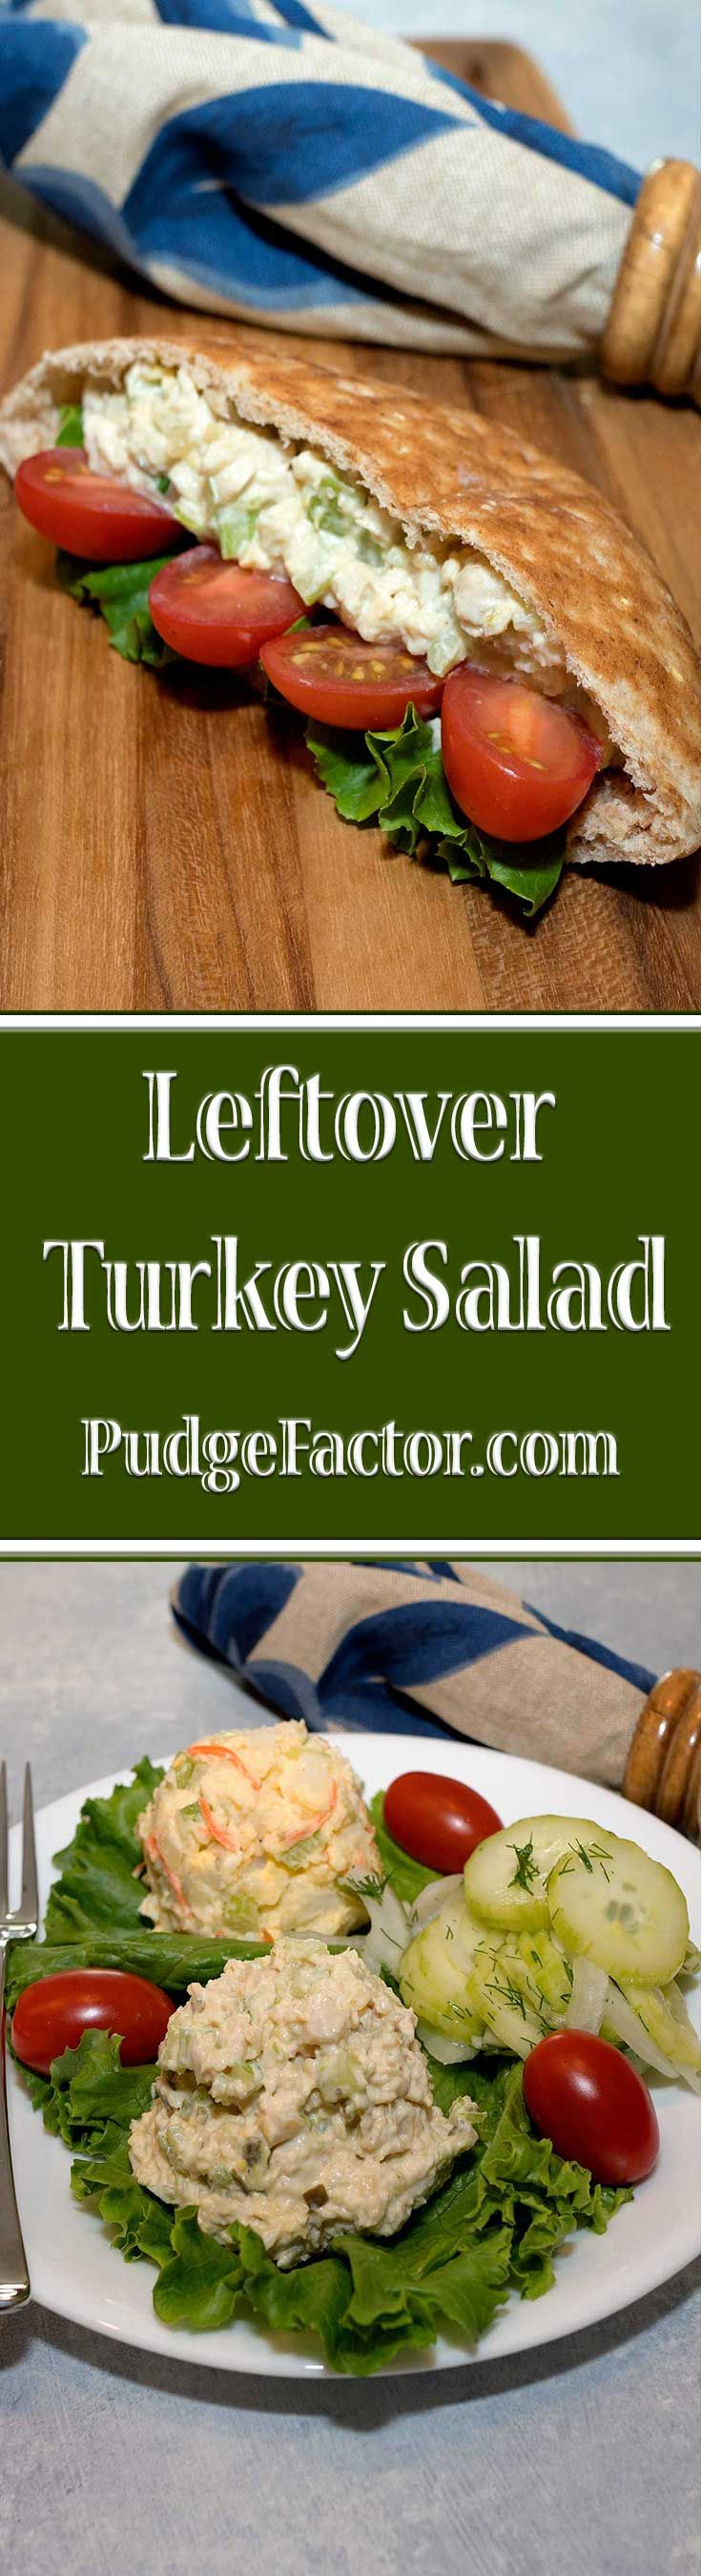 An easy and delicious salad with leftover turkey!